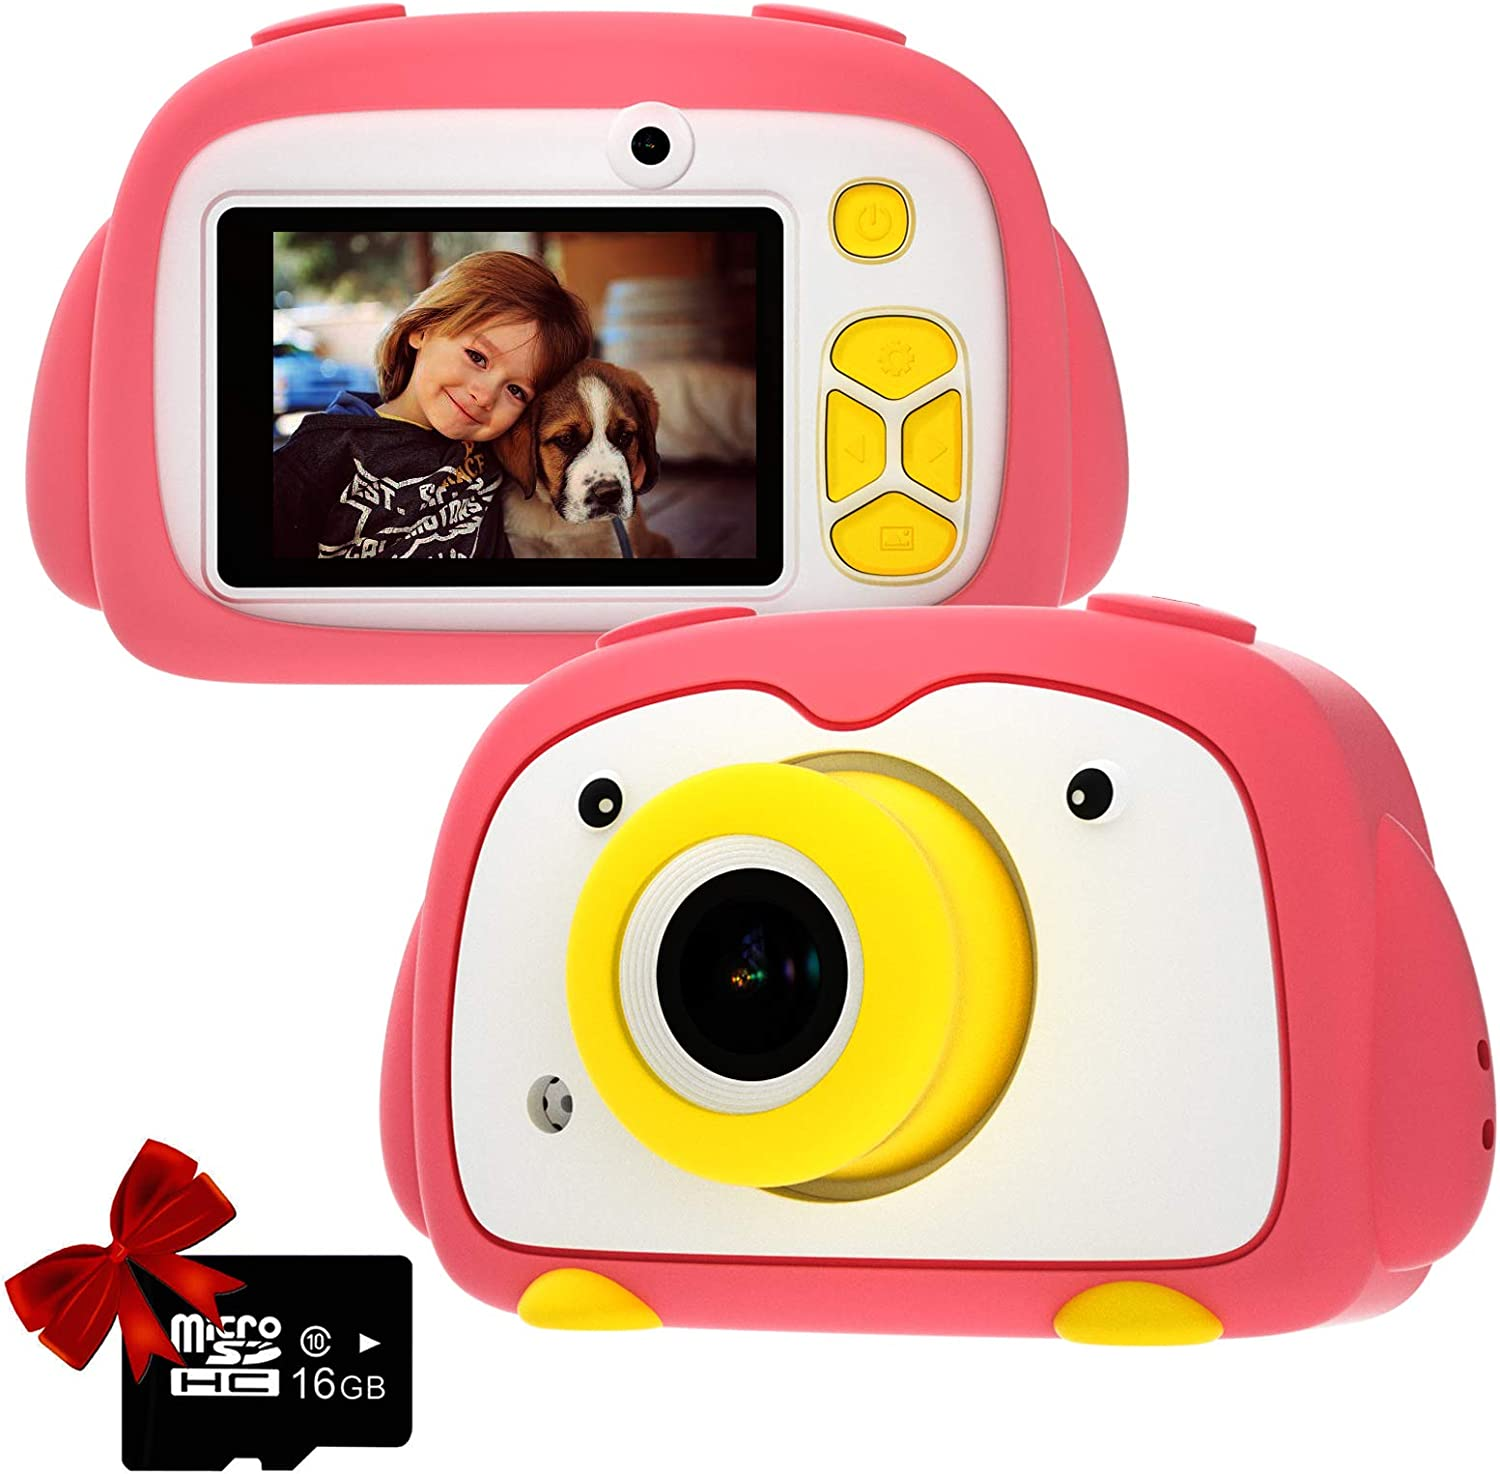 Kids Camera PANNOVO Digital Cam for Girls Rechargeable Video Recorder Cartoon Shockproof Silicone Case with 16GB SD Card 12MP HD 1080P 2 Inch Screen for 3-12 Year Old Boys Toddler - Pink